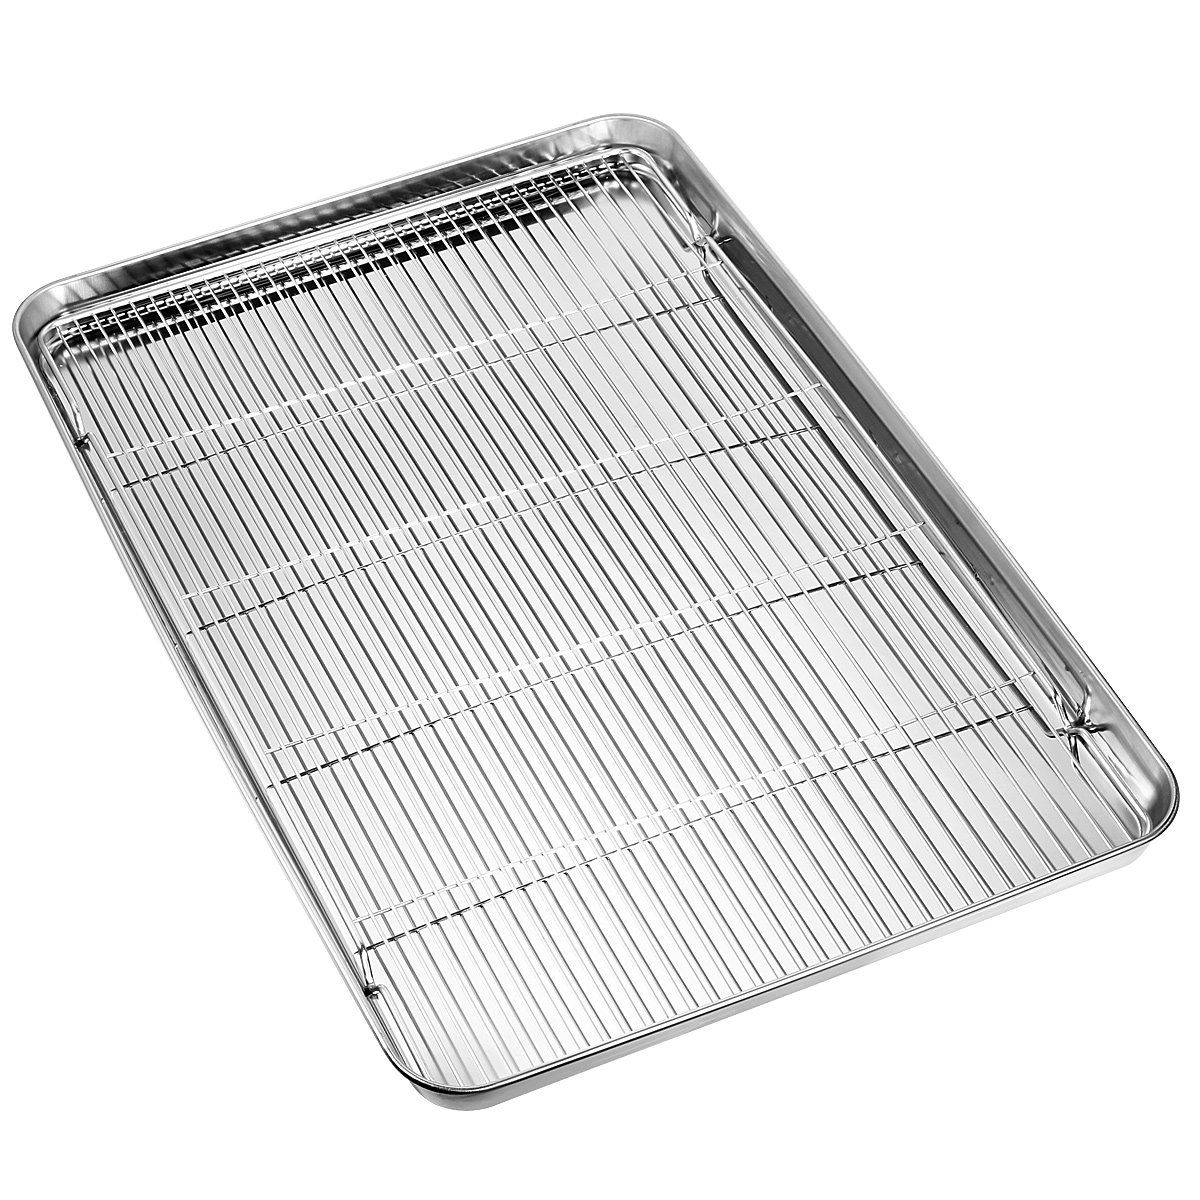 Hkj Chef Large Set Cookie Sheet And Nonstick Cooling Rack And Stainless Steel Baking Toaster Oven Tray Pan Rectangle Size Set Cookie Toaster Oven Cooling Racks